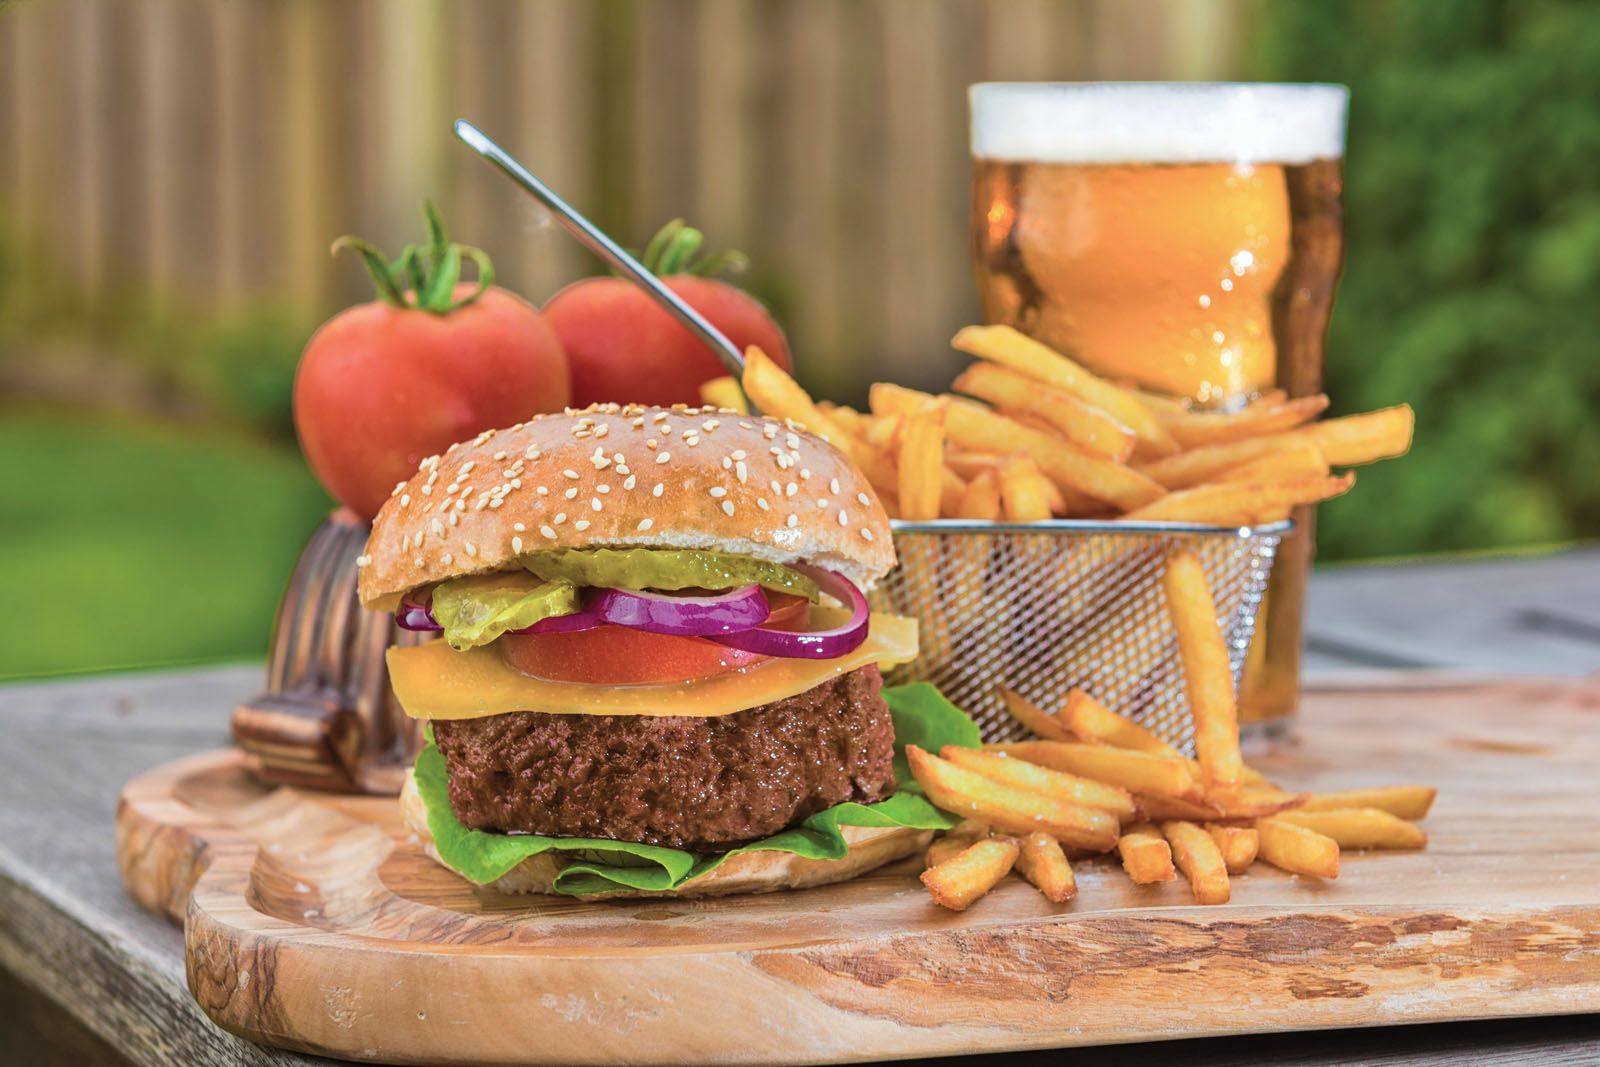 The world's first cell-based hamburger and even a steak tartare made possible by Dutch company Mosa Meat